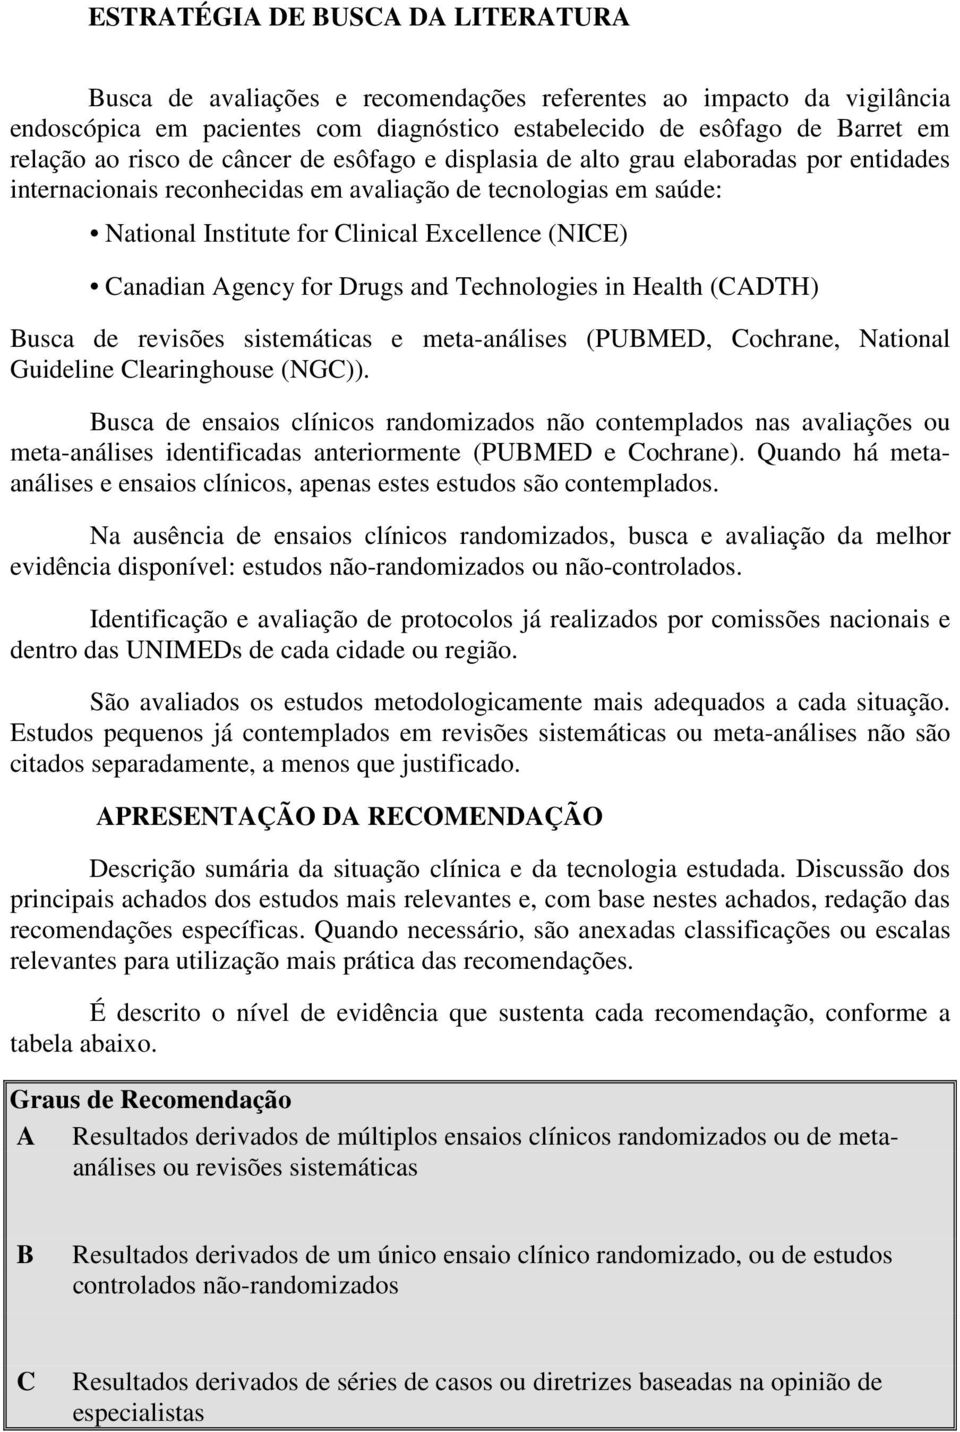 Canadian Agency for Drugs and Technologies in Health (CADTH) Busca de revisões sistemáticas e meta-análises (PUBMED, Cochrane, National Guideline Clearinghouse (NGC)).